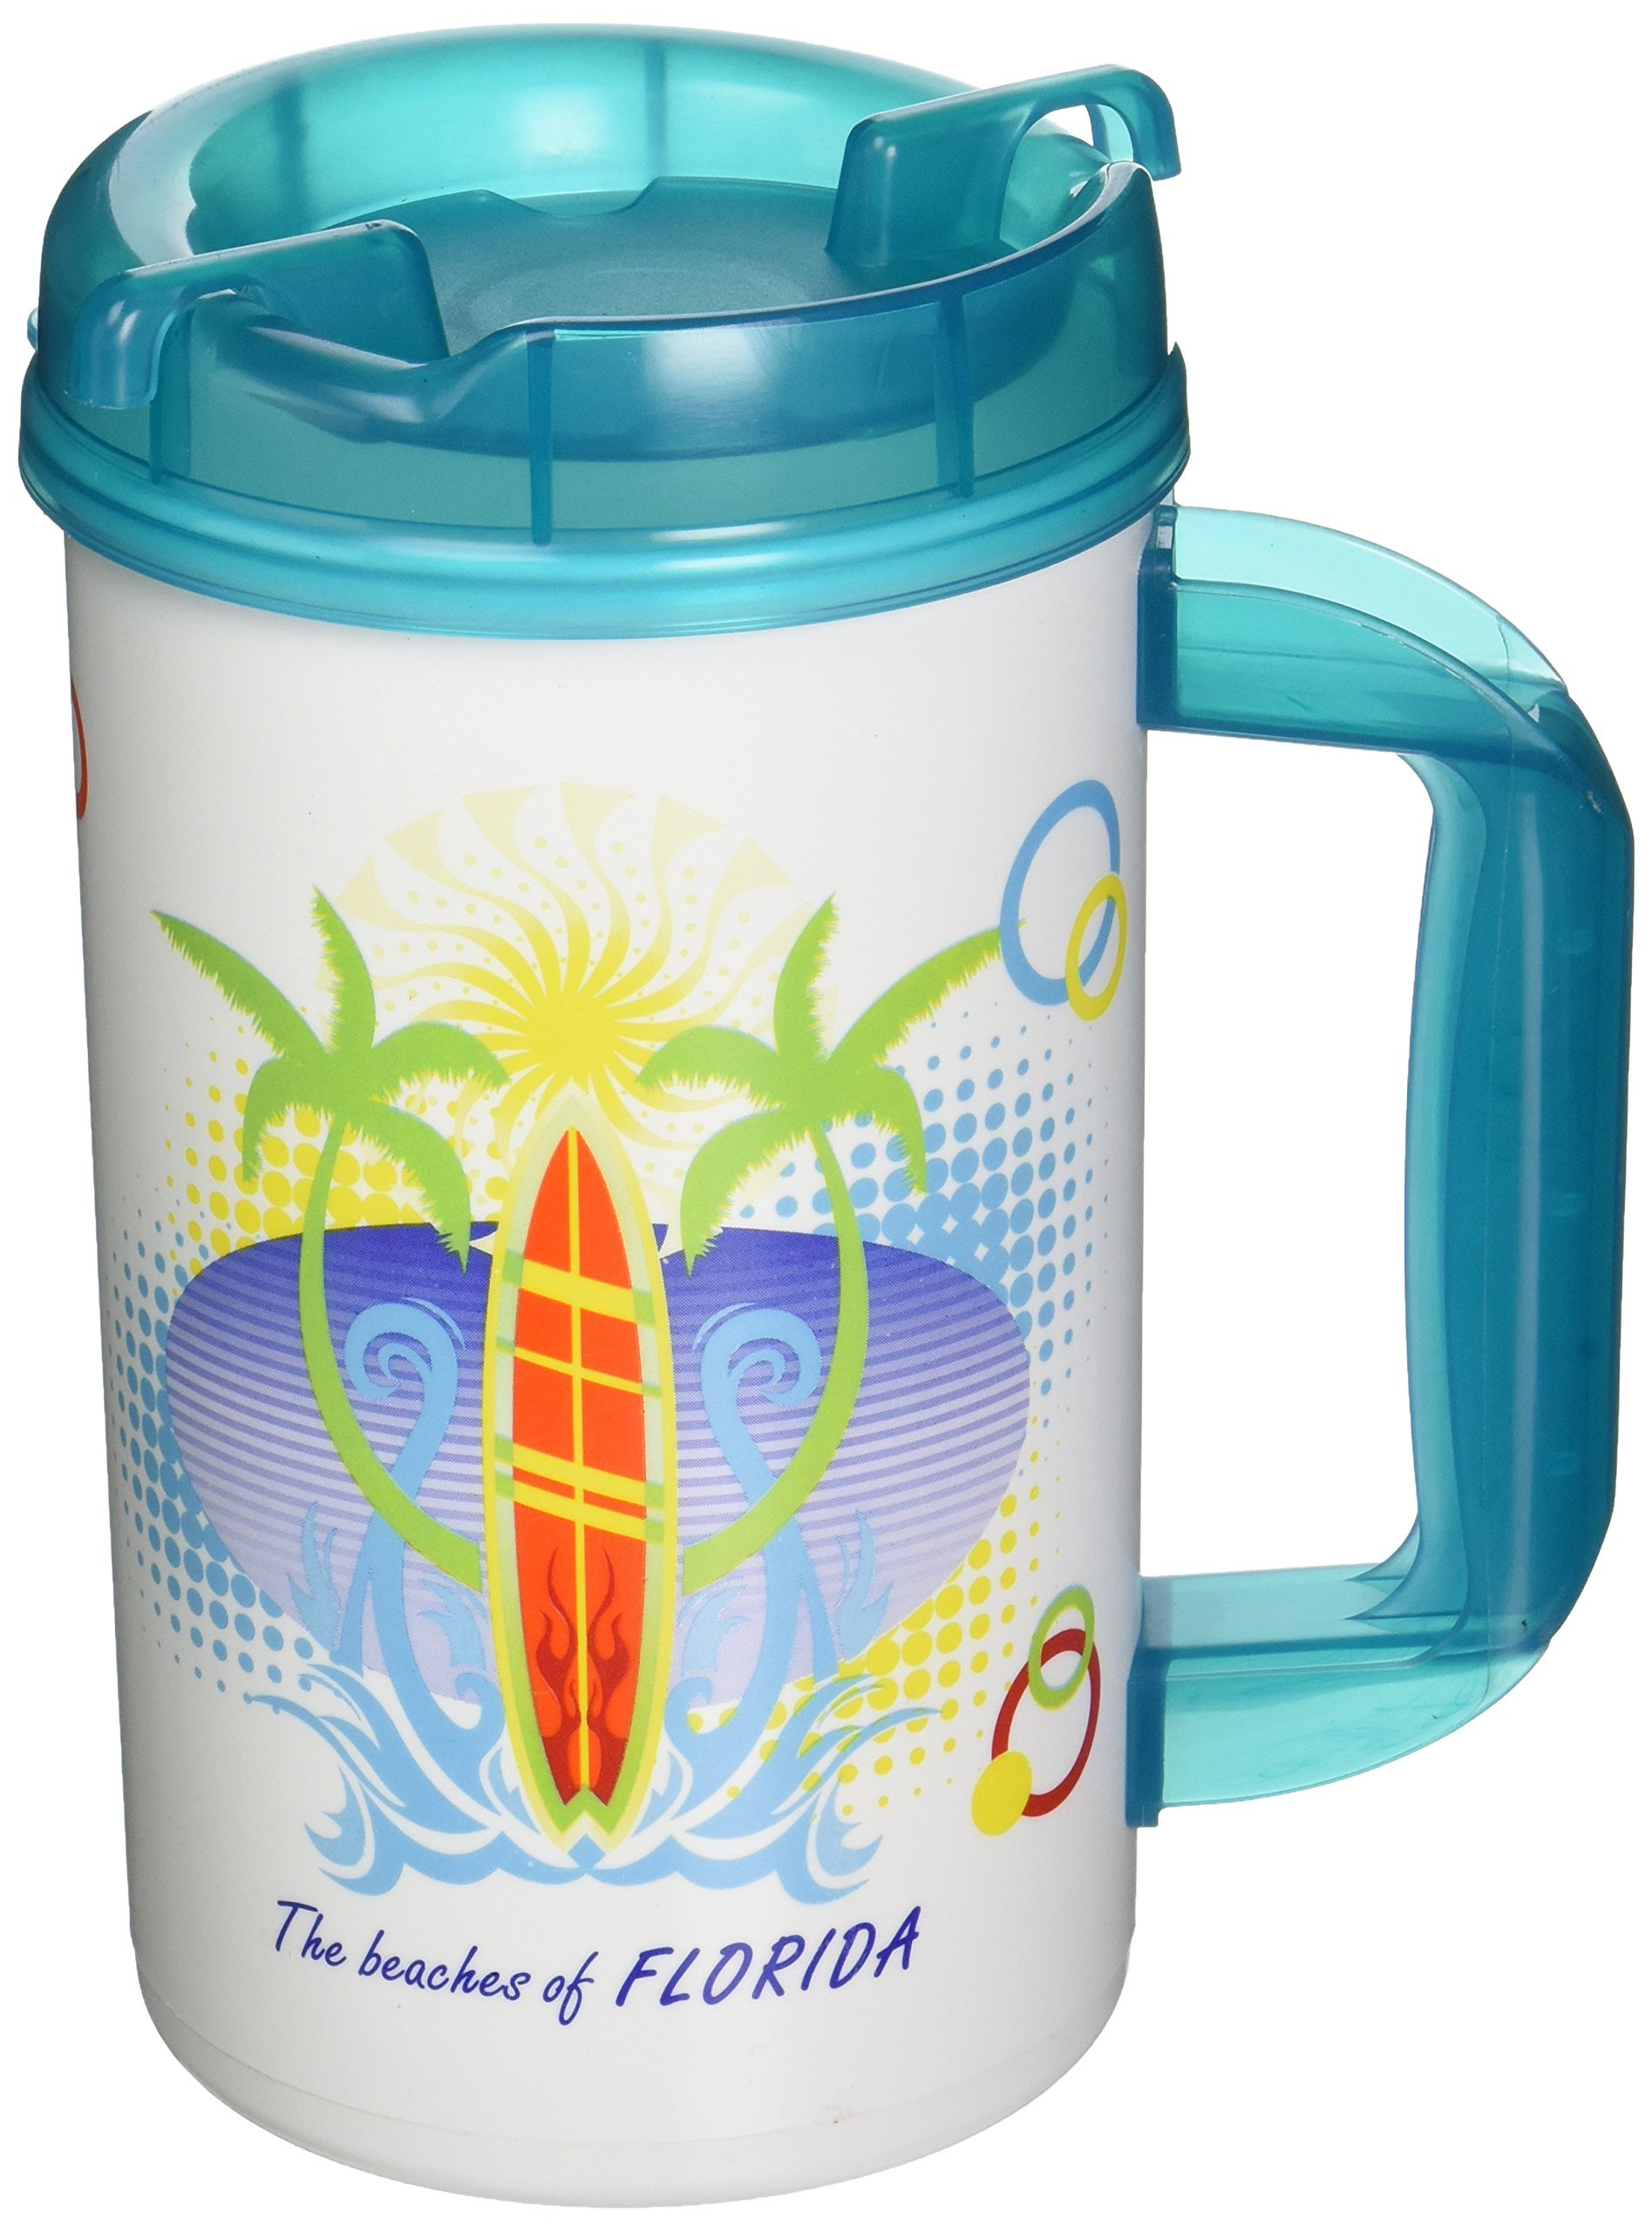 GameDay Novelty the Beaches of Florida Insulated Travel Mug with Lid, 32 oz.